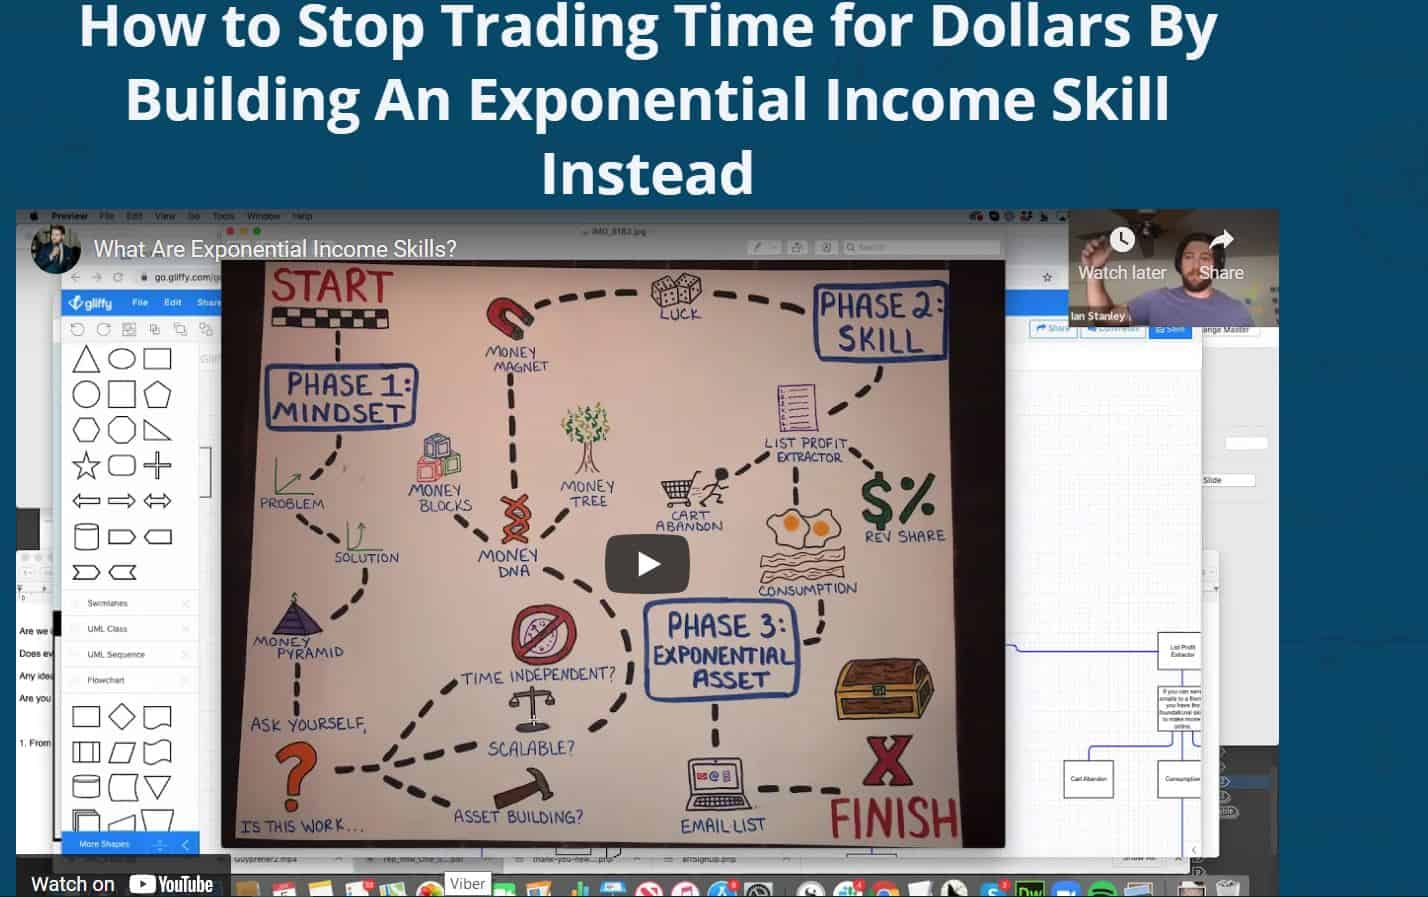 Ian Stanley - Exponential Income Skill Training